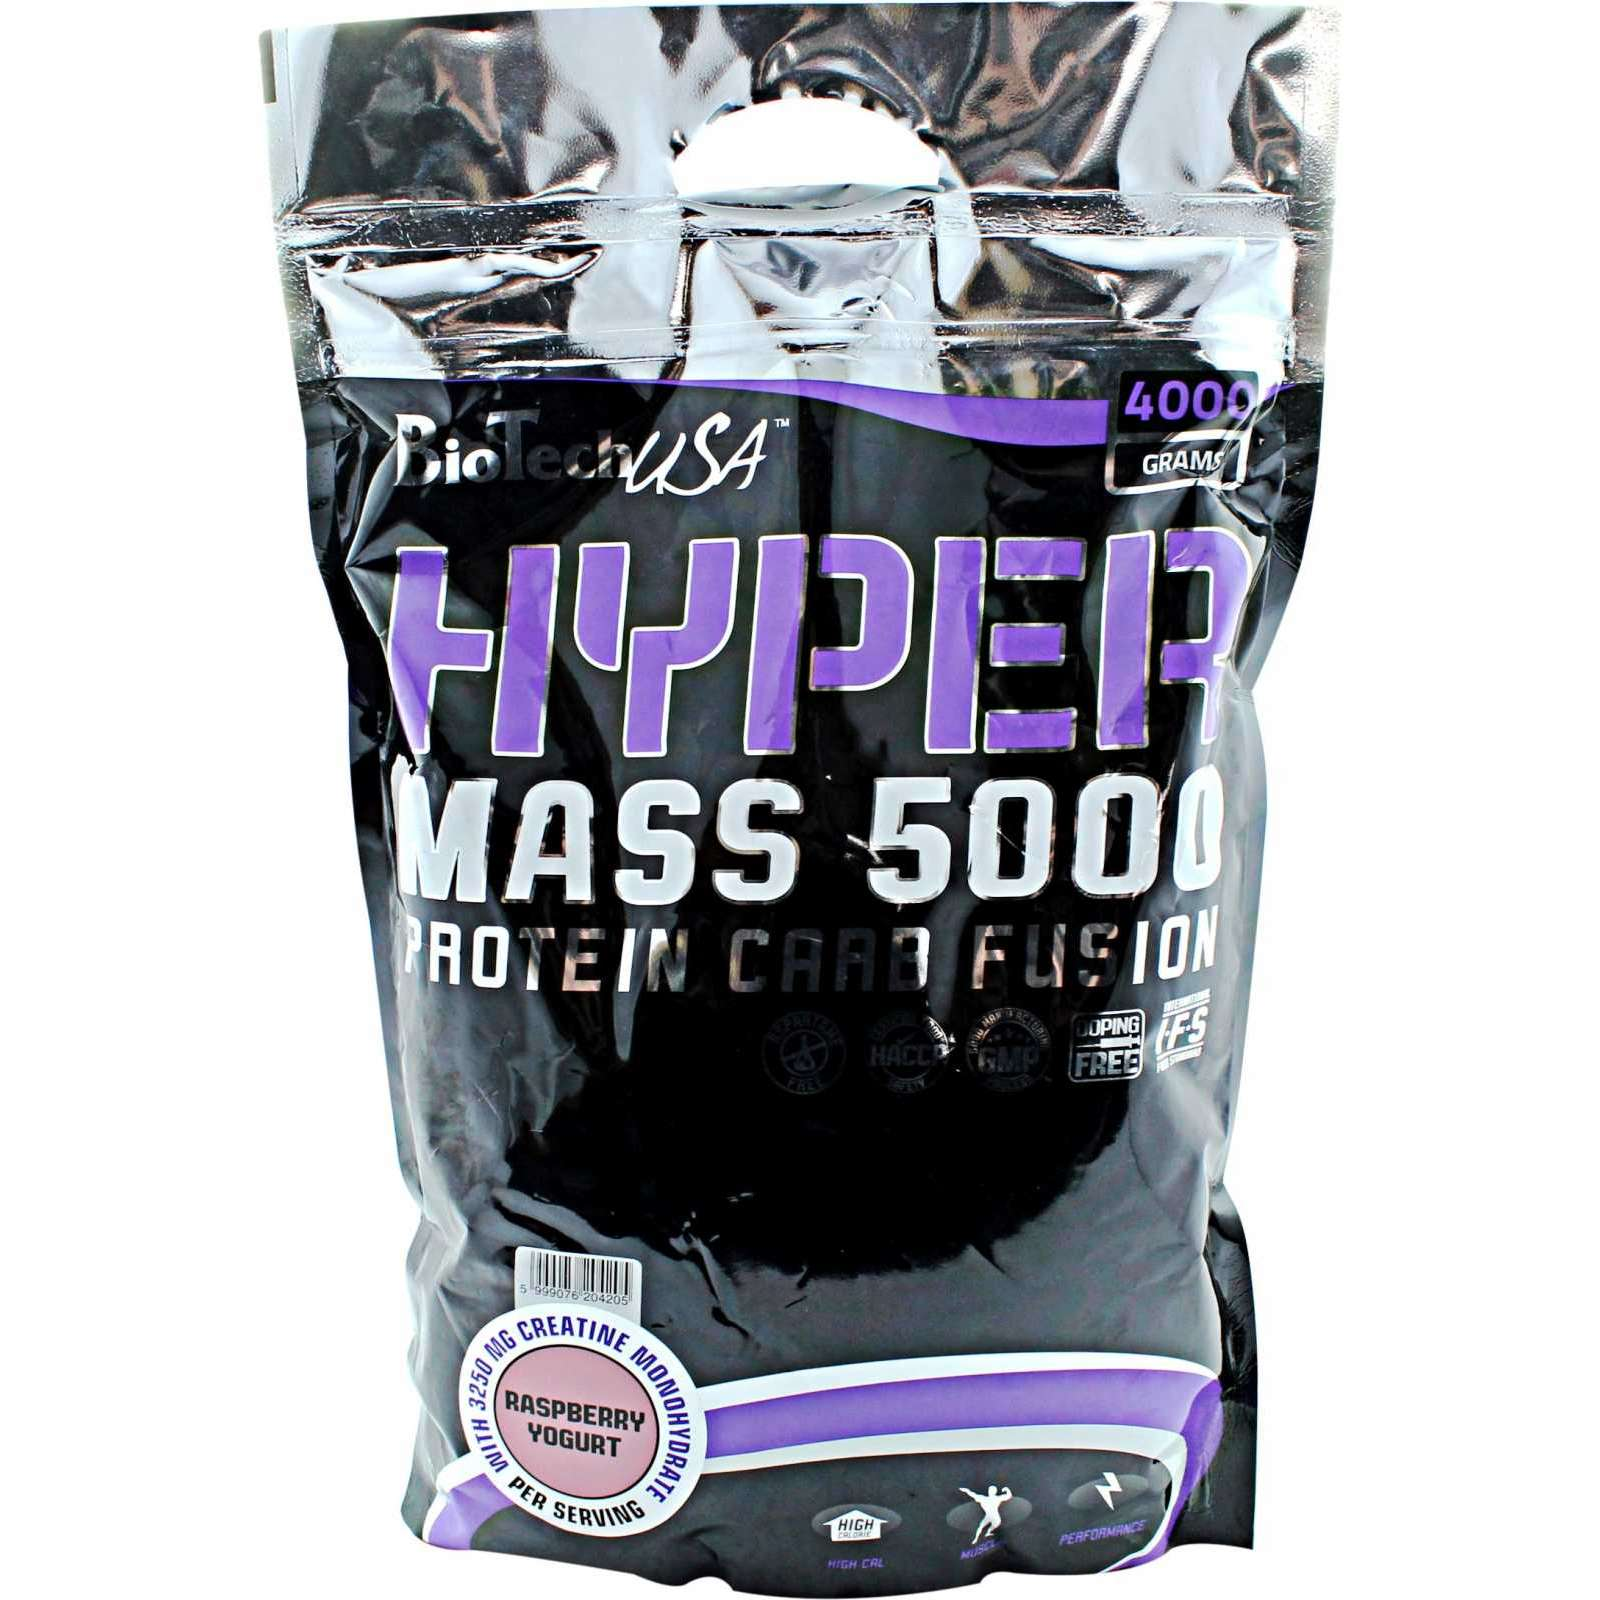 Image result for hyper mass 5000 1 kg